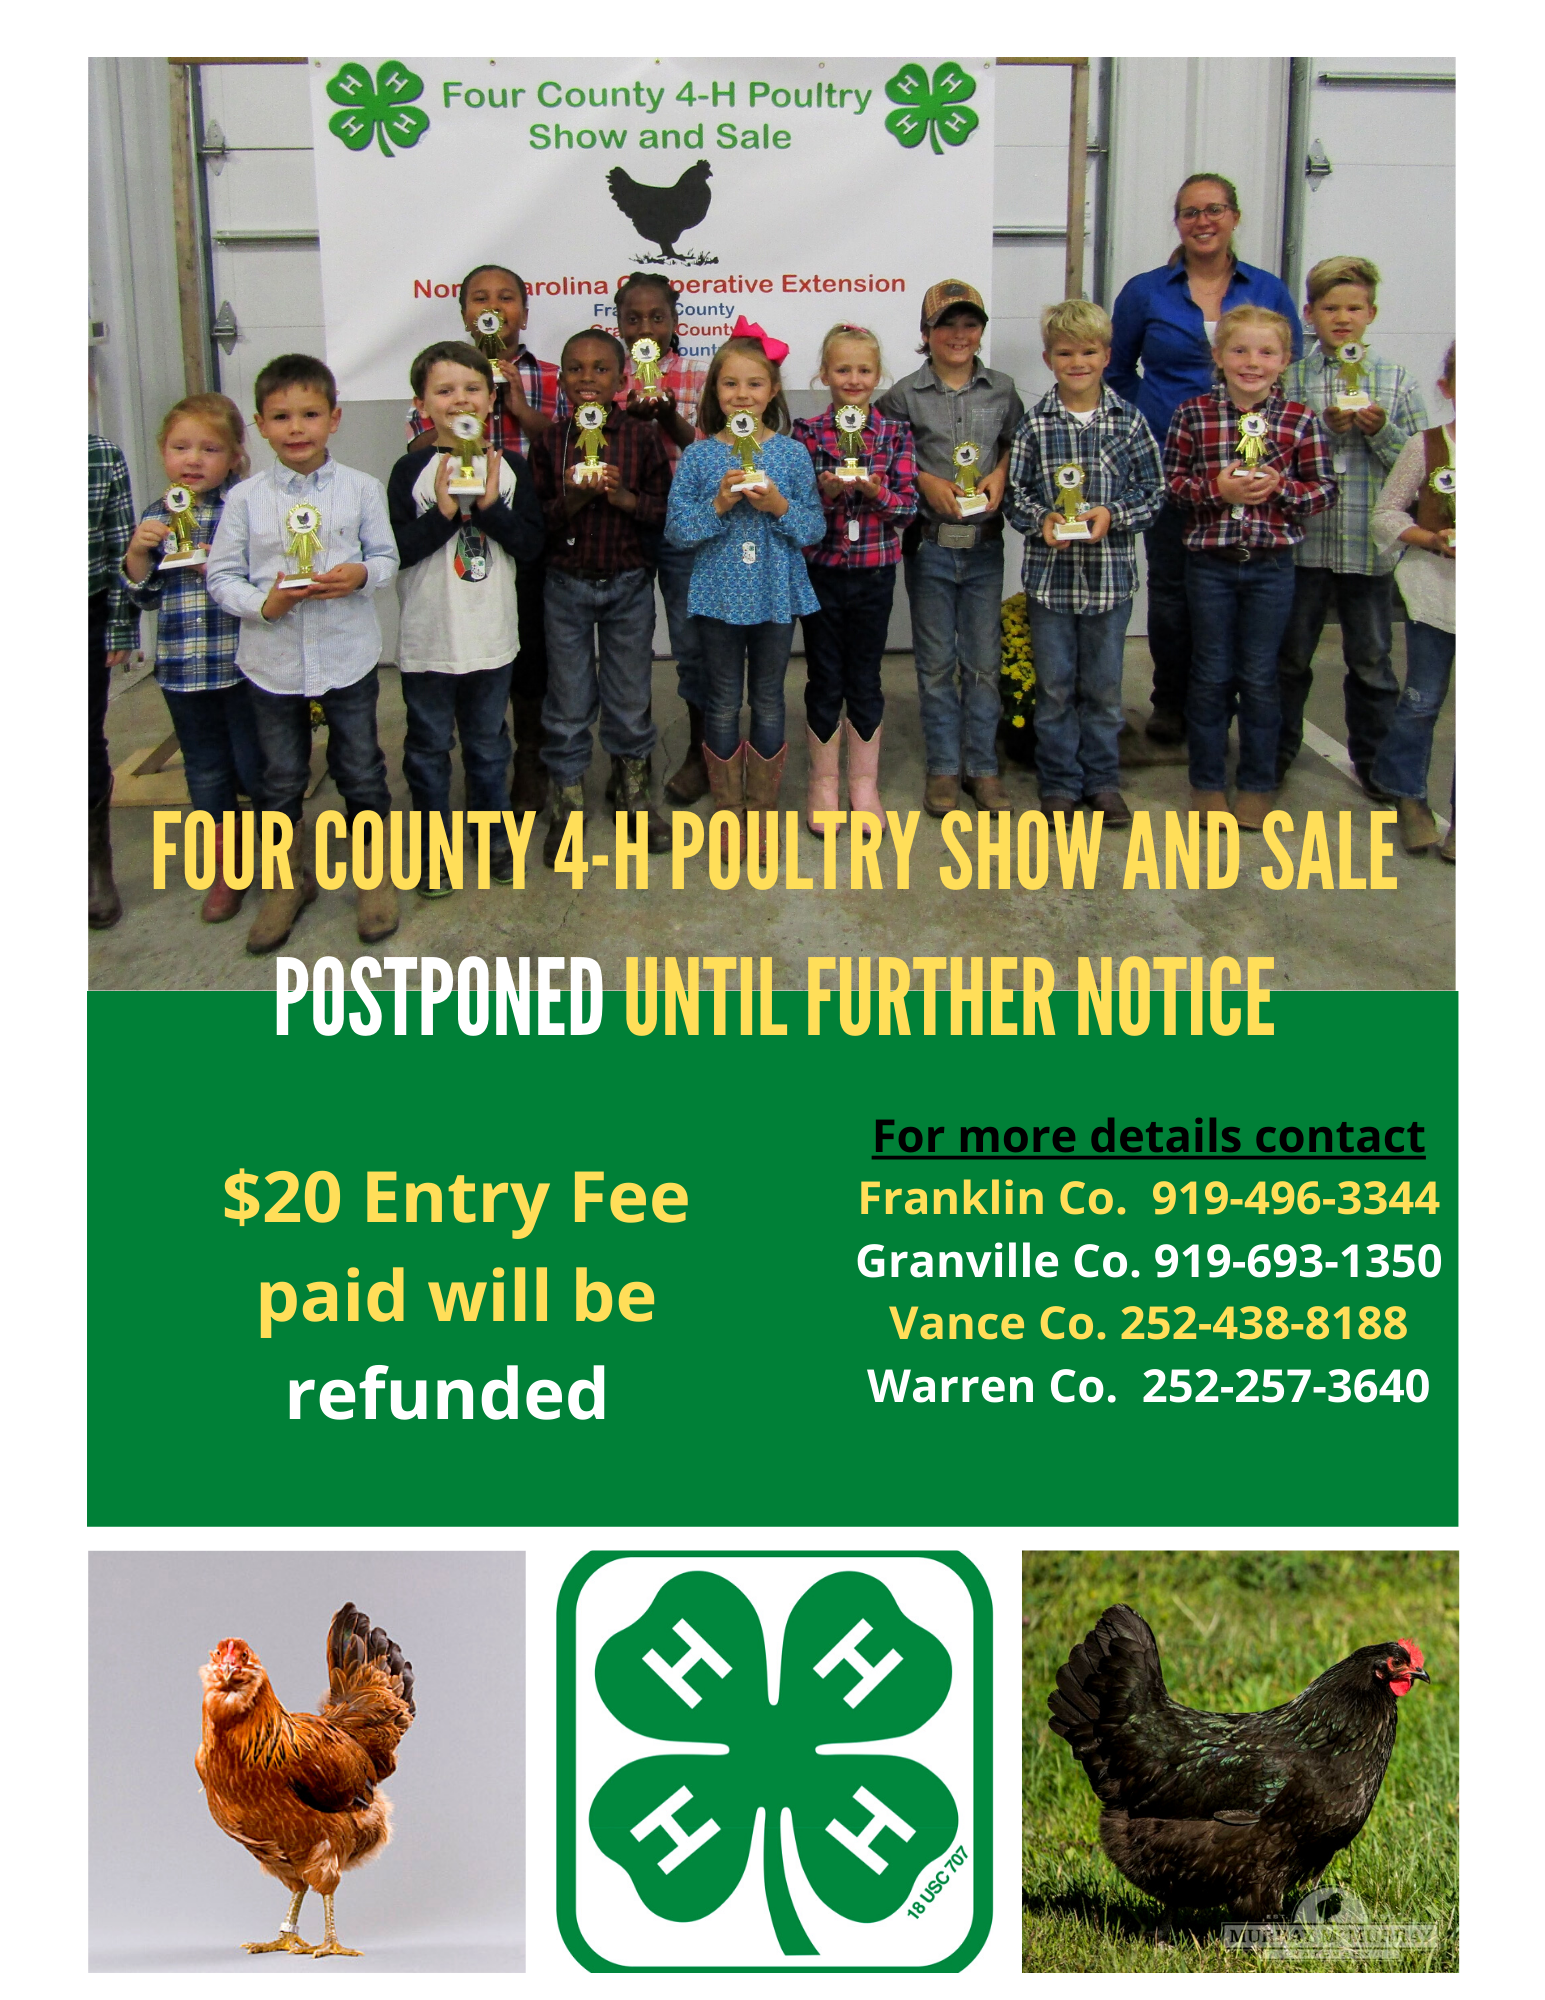 2020 Four County 4-H poultry show and sale postponed